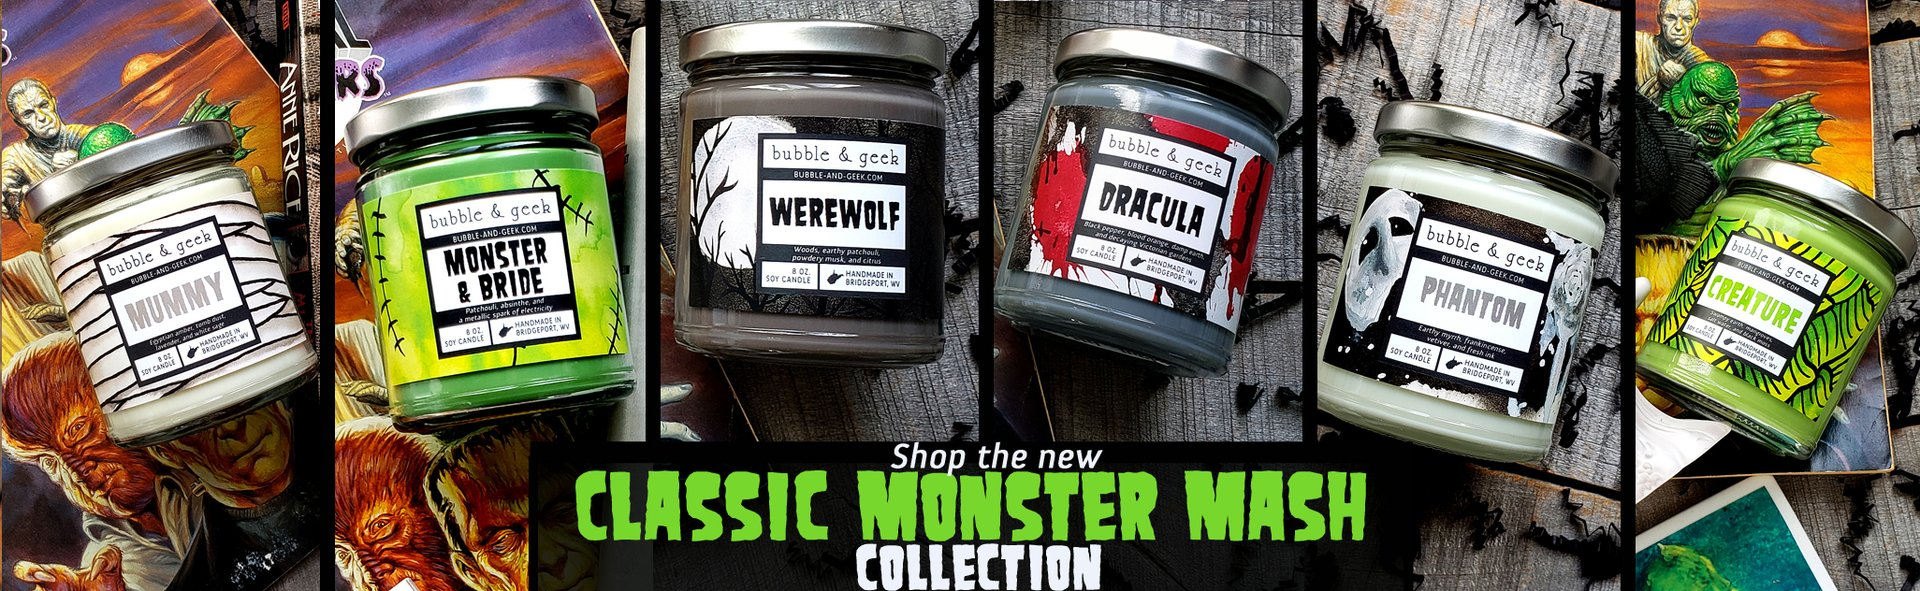 Shop the Classic Monsters scent collection from Bubble and Geek